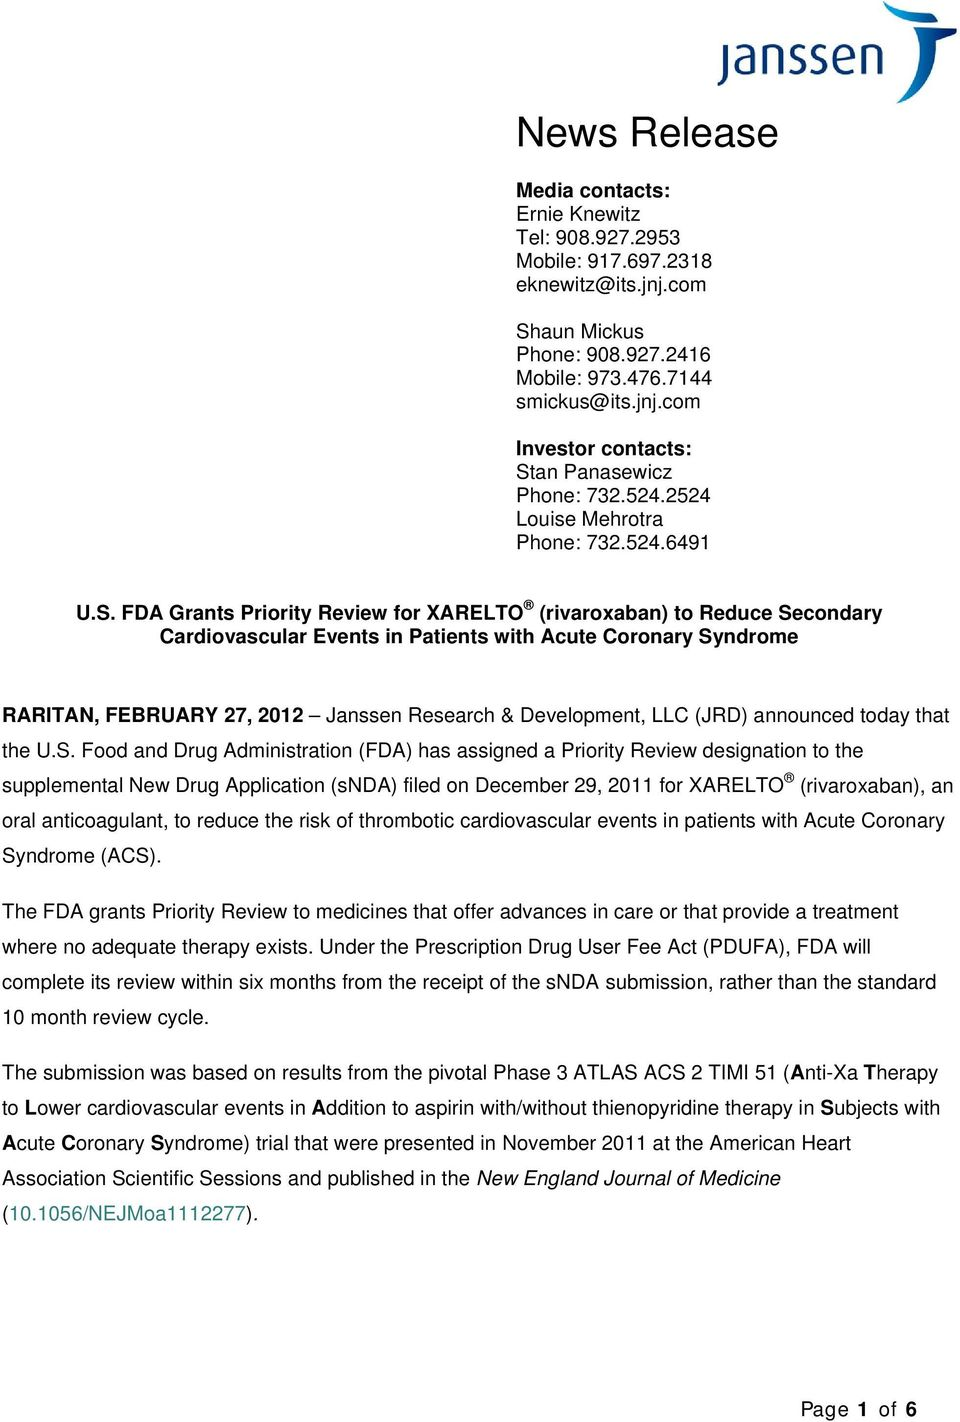 FDA Grants Priority Review for XARELTO (rivaroxaban) to Reduce Secondary Cardiovascular Events in Patients with Acute Coronary Syndrome RARITAN, FEBRUARY 27, 2012 Janssen Research & Development, LLC